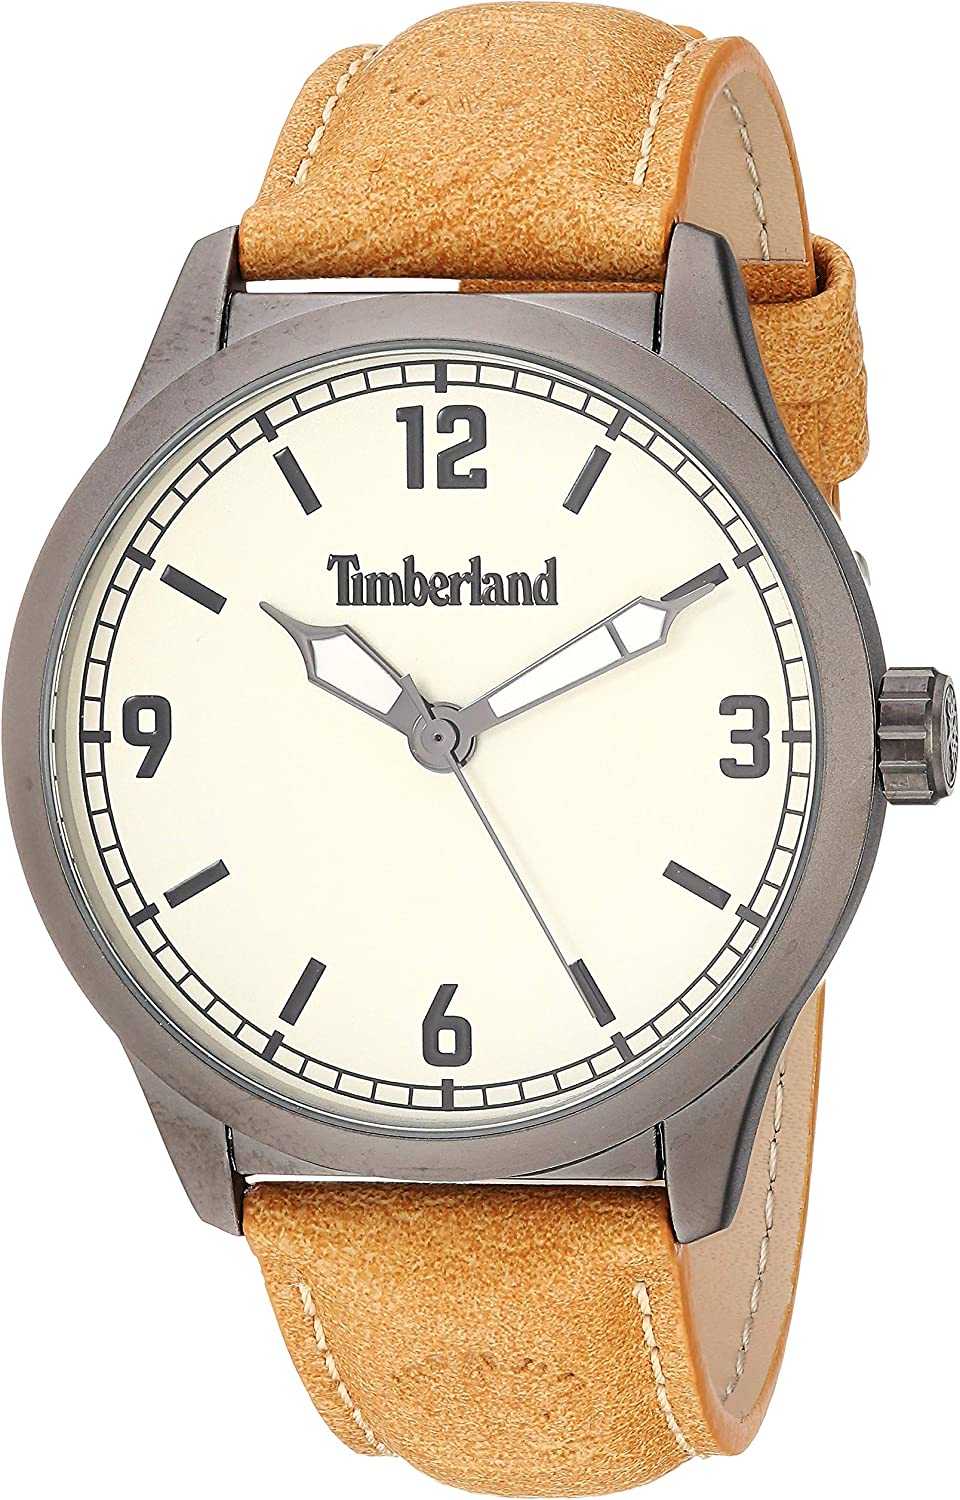 Timberland Men s Orrington Watch